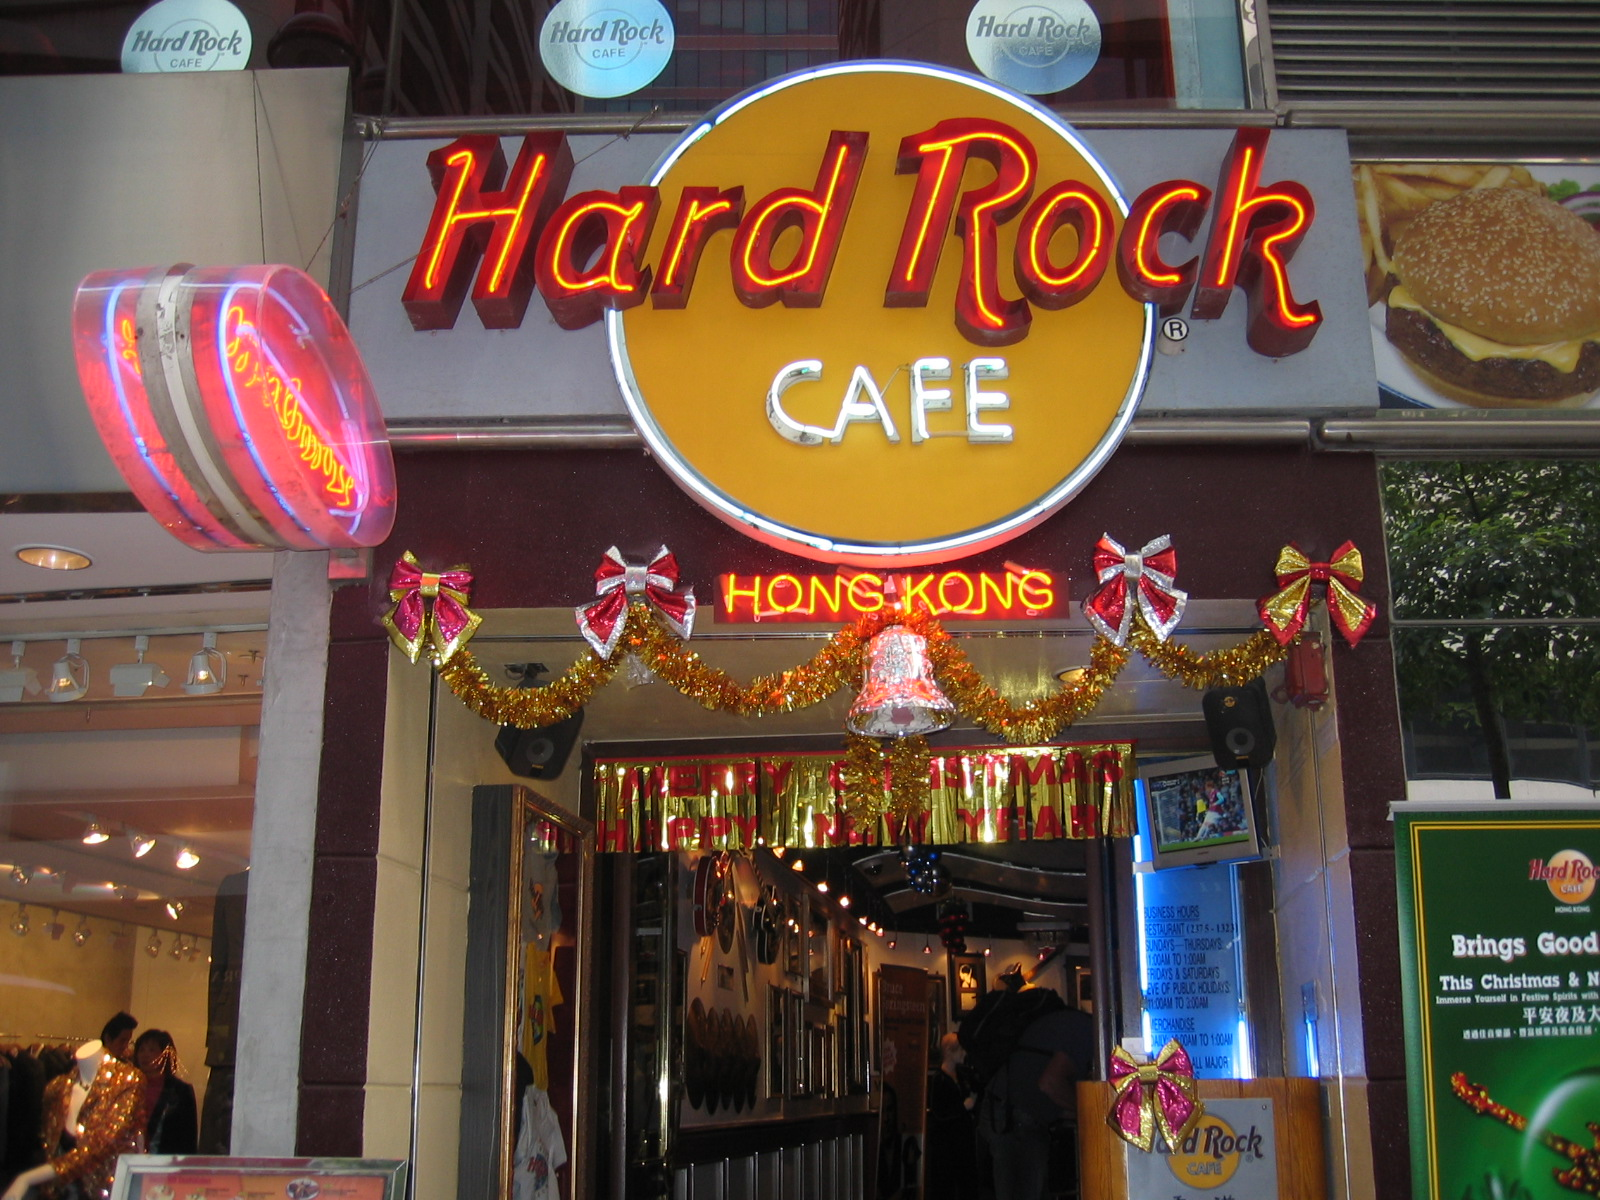 Hard Rock Cafe Menu Yelp